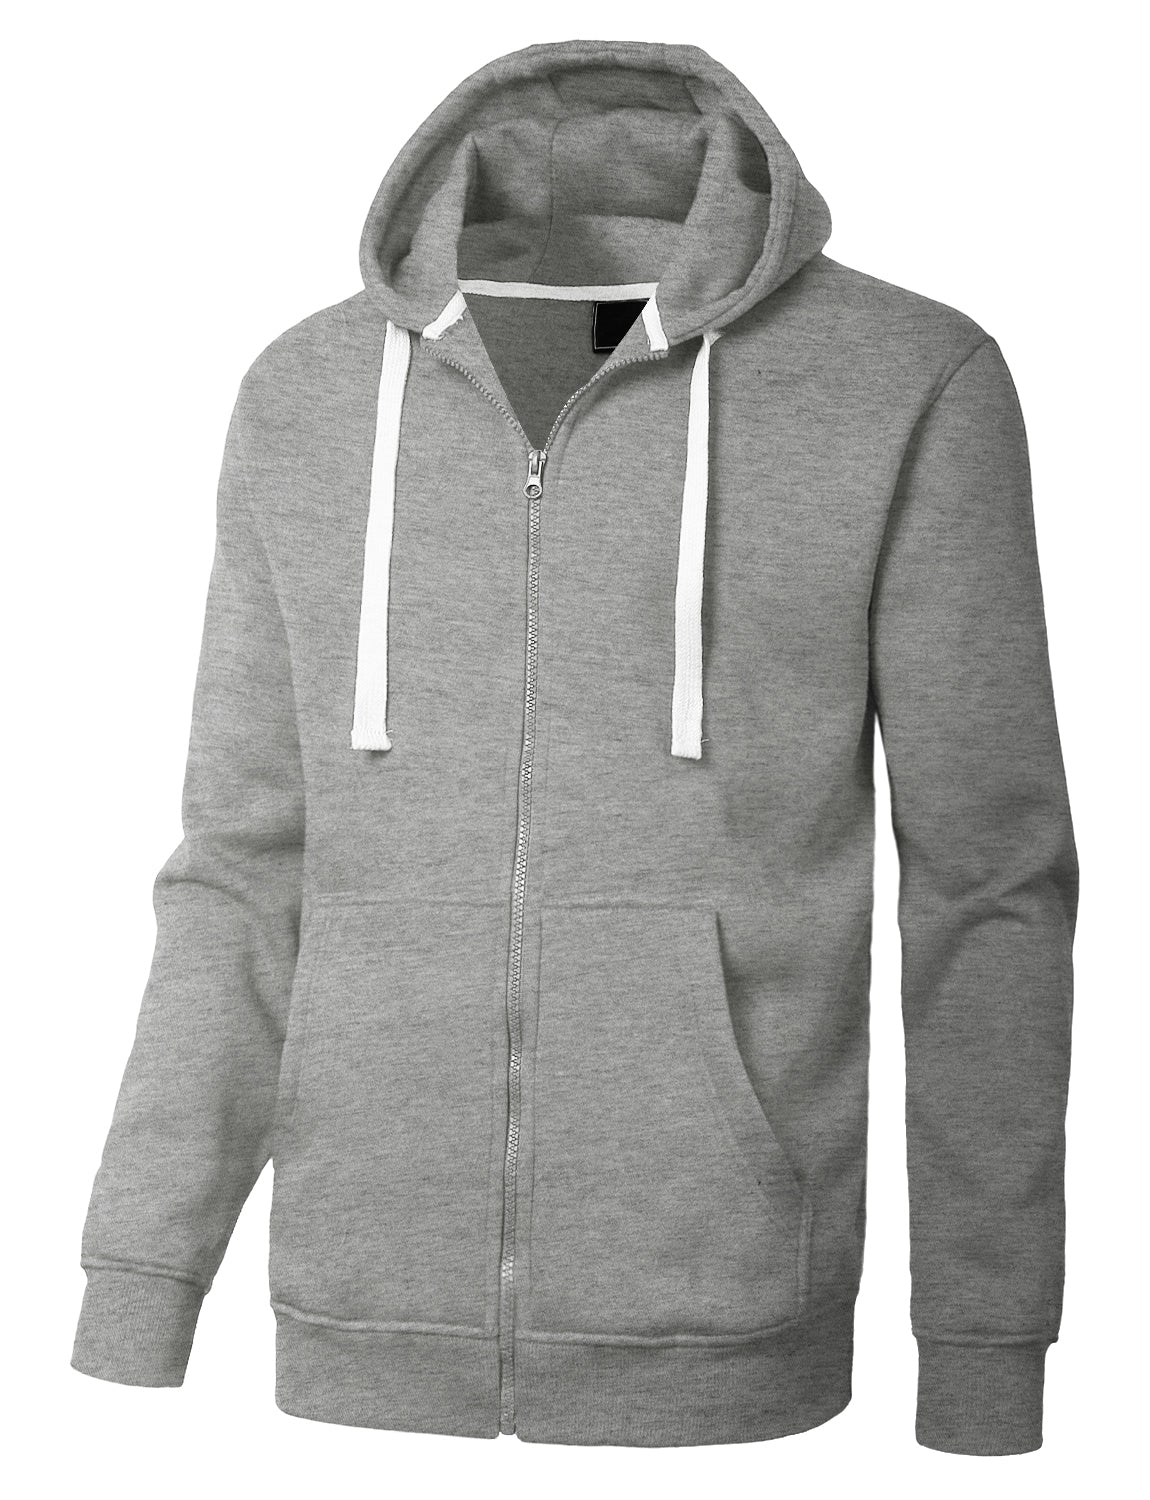 GREY Basic Zip-Up Fleece Hoodie Jacket - URBANCREWS